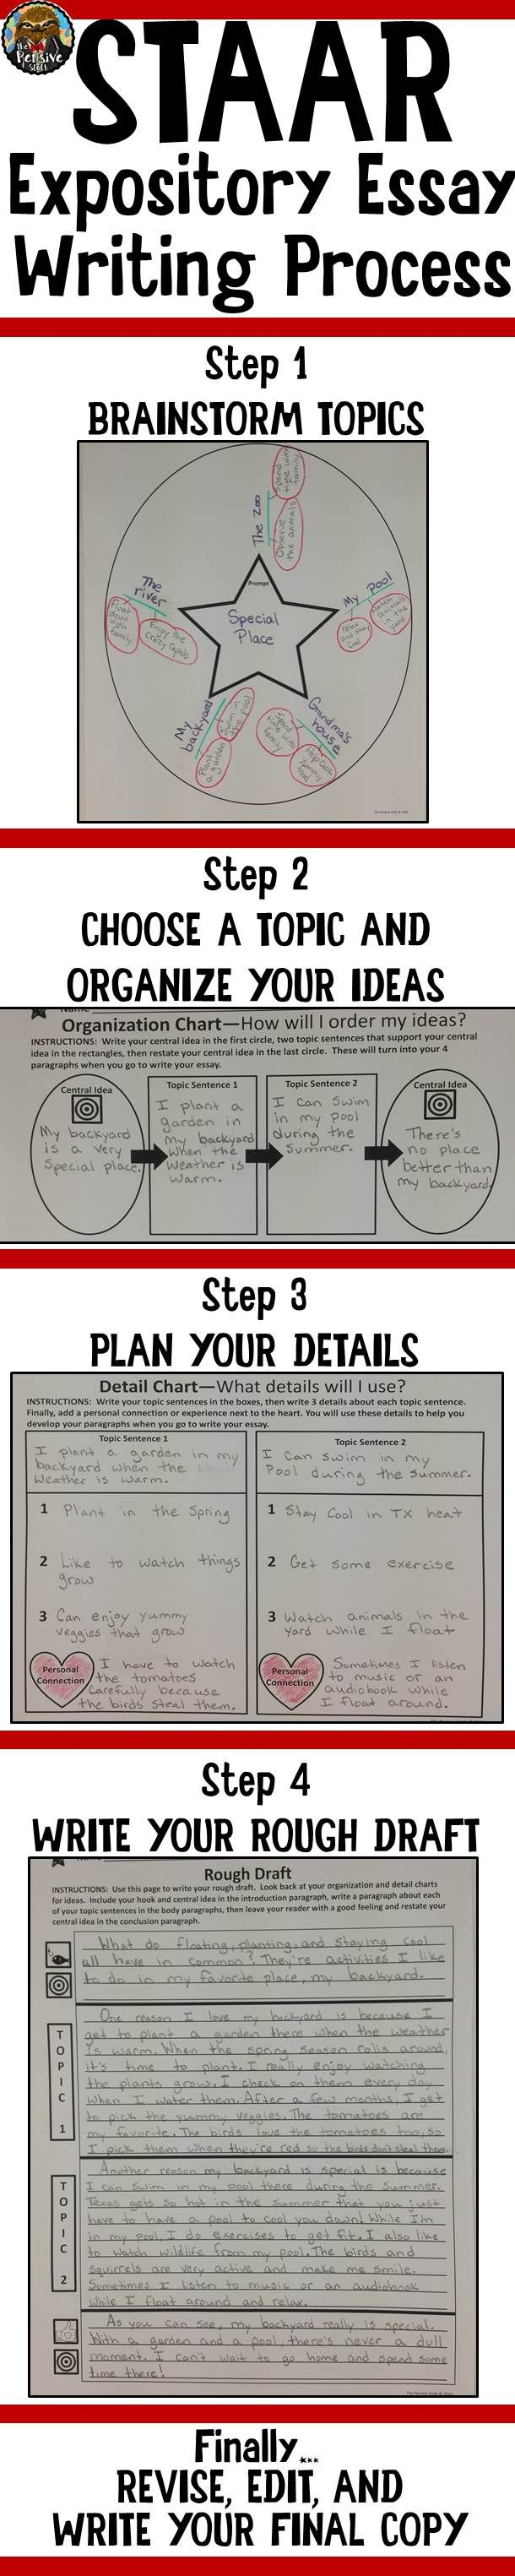 best expository writing ideas expository 4th grade staar writing expository essay graphic organizers texas teks